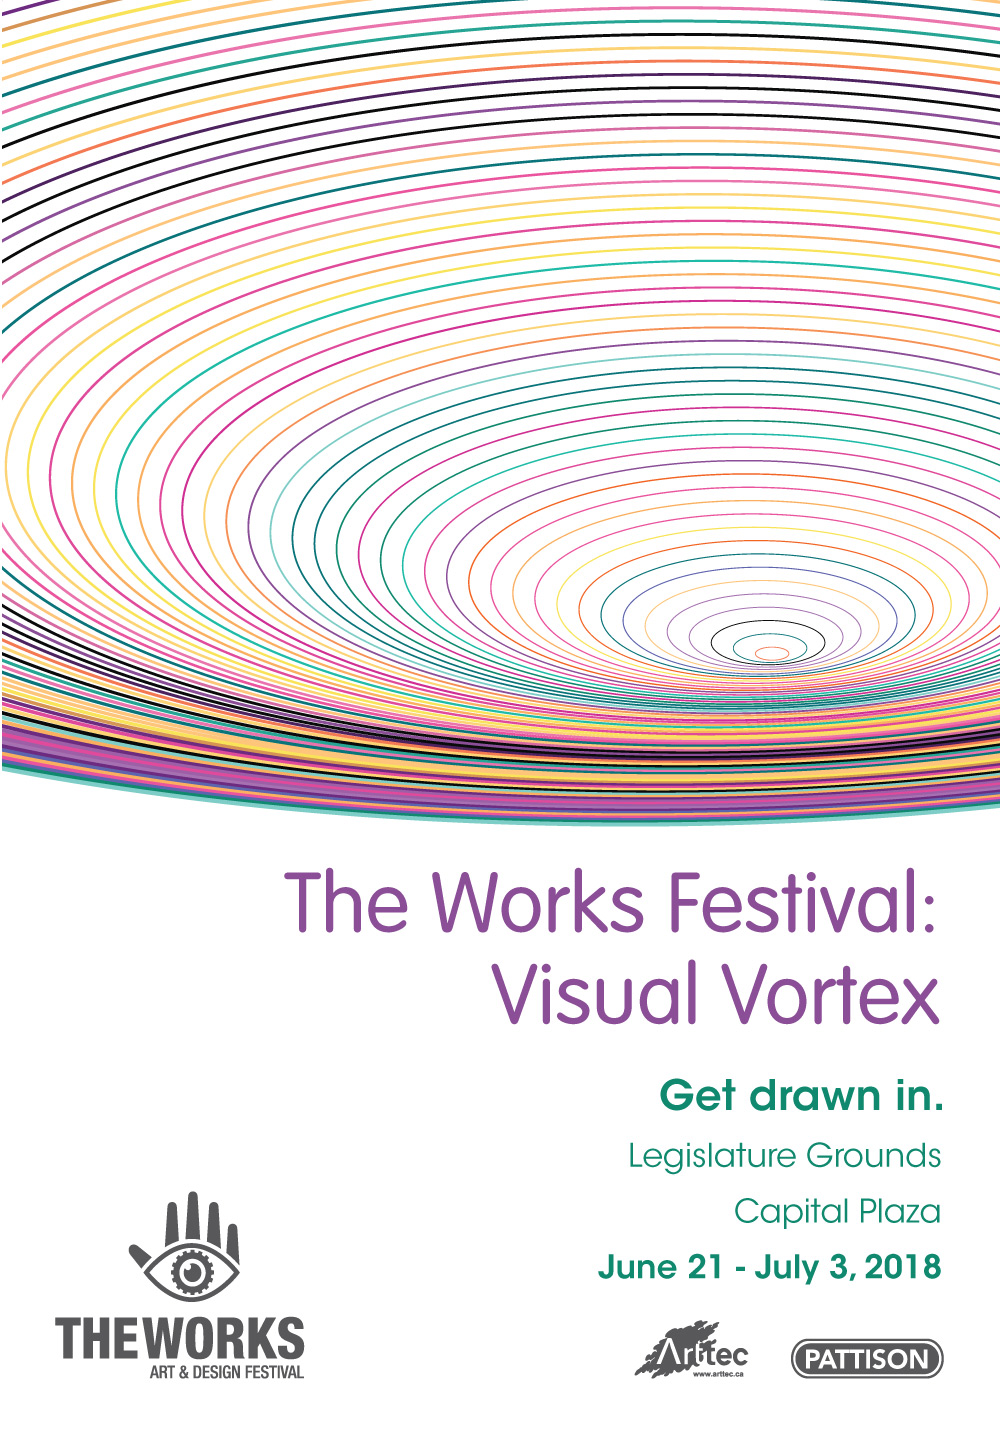 The Works Festival Campaign 2018